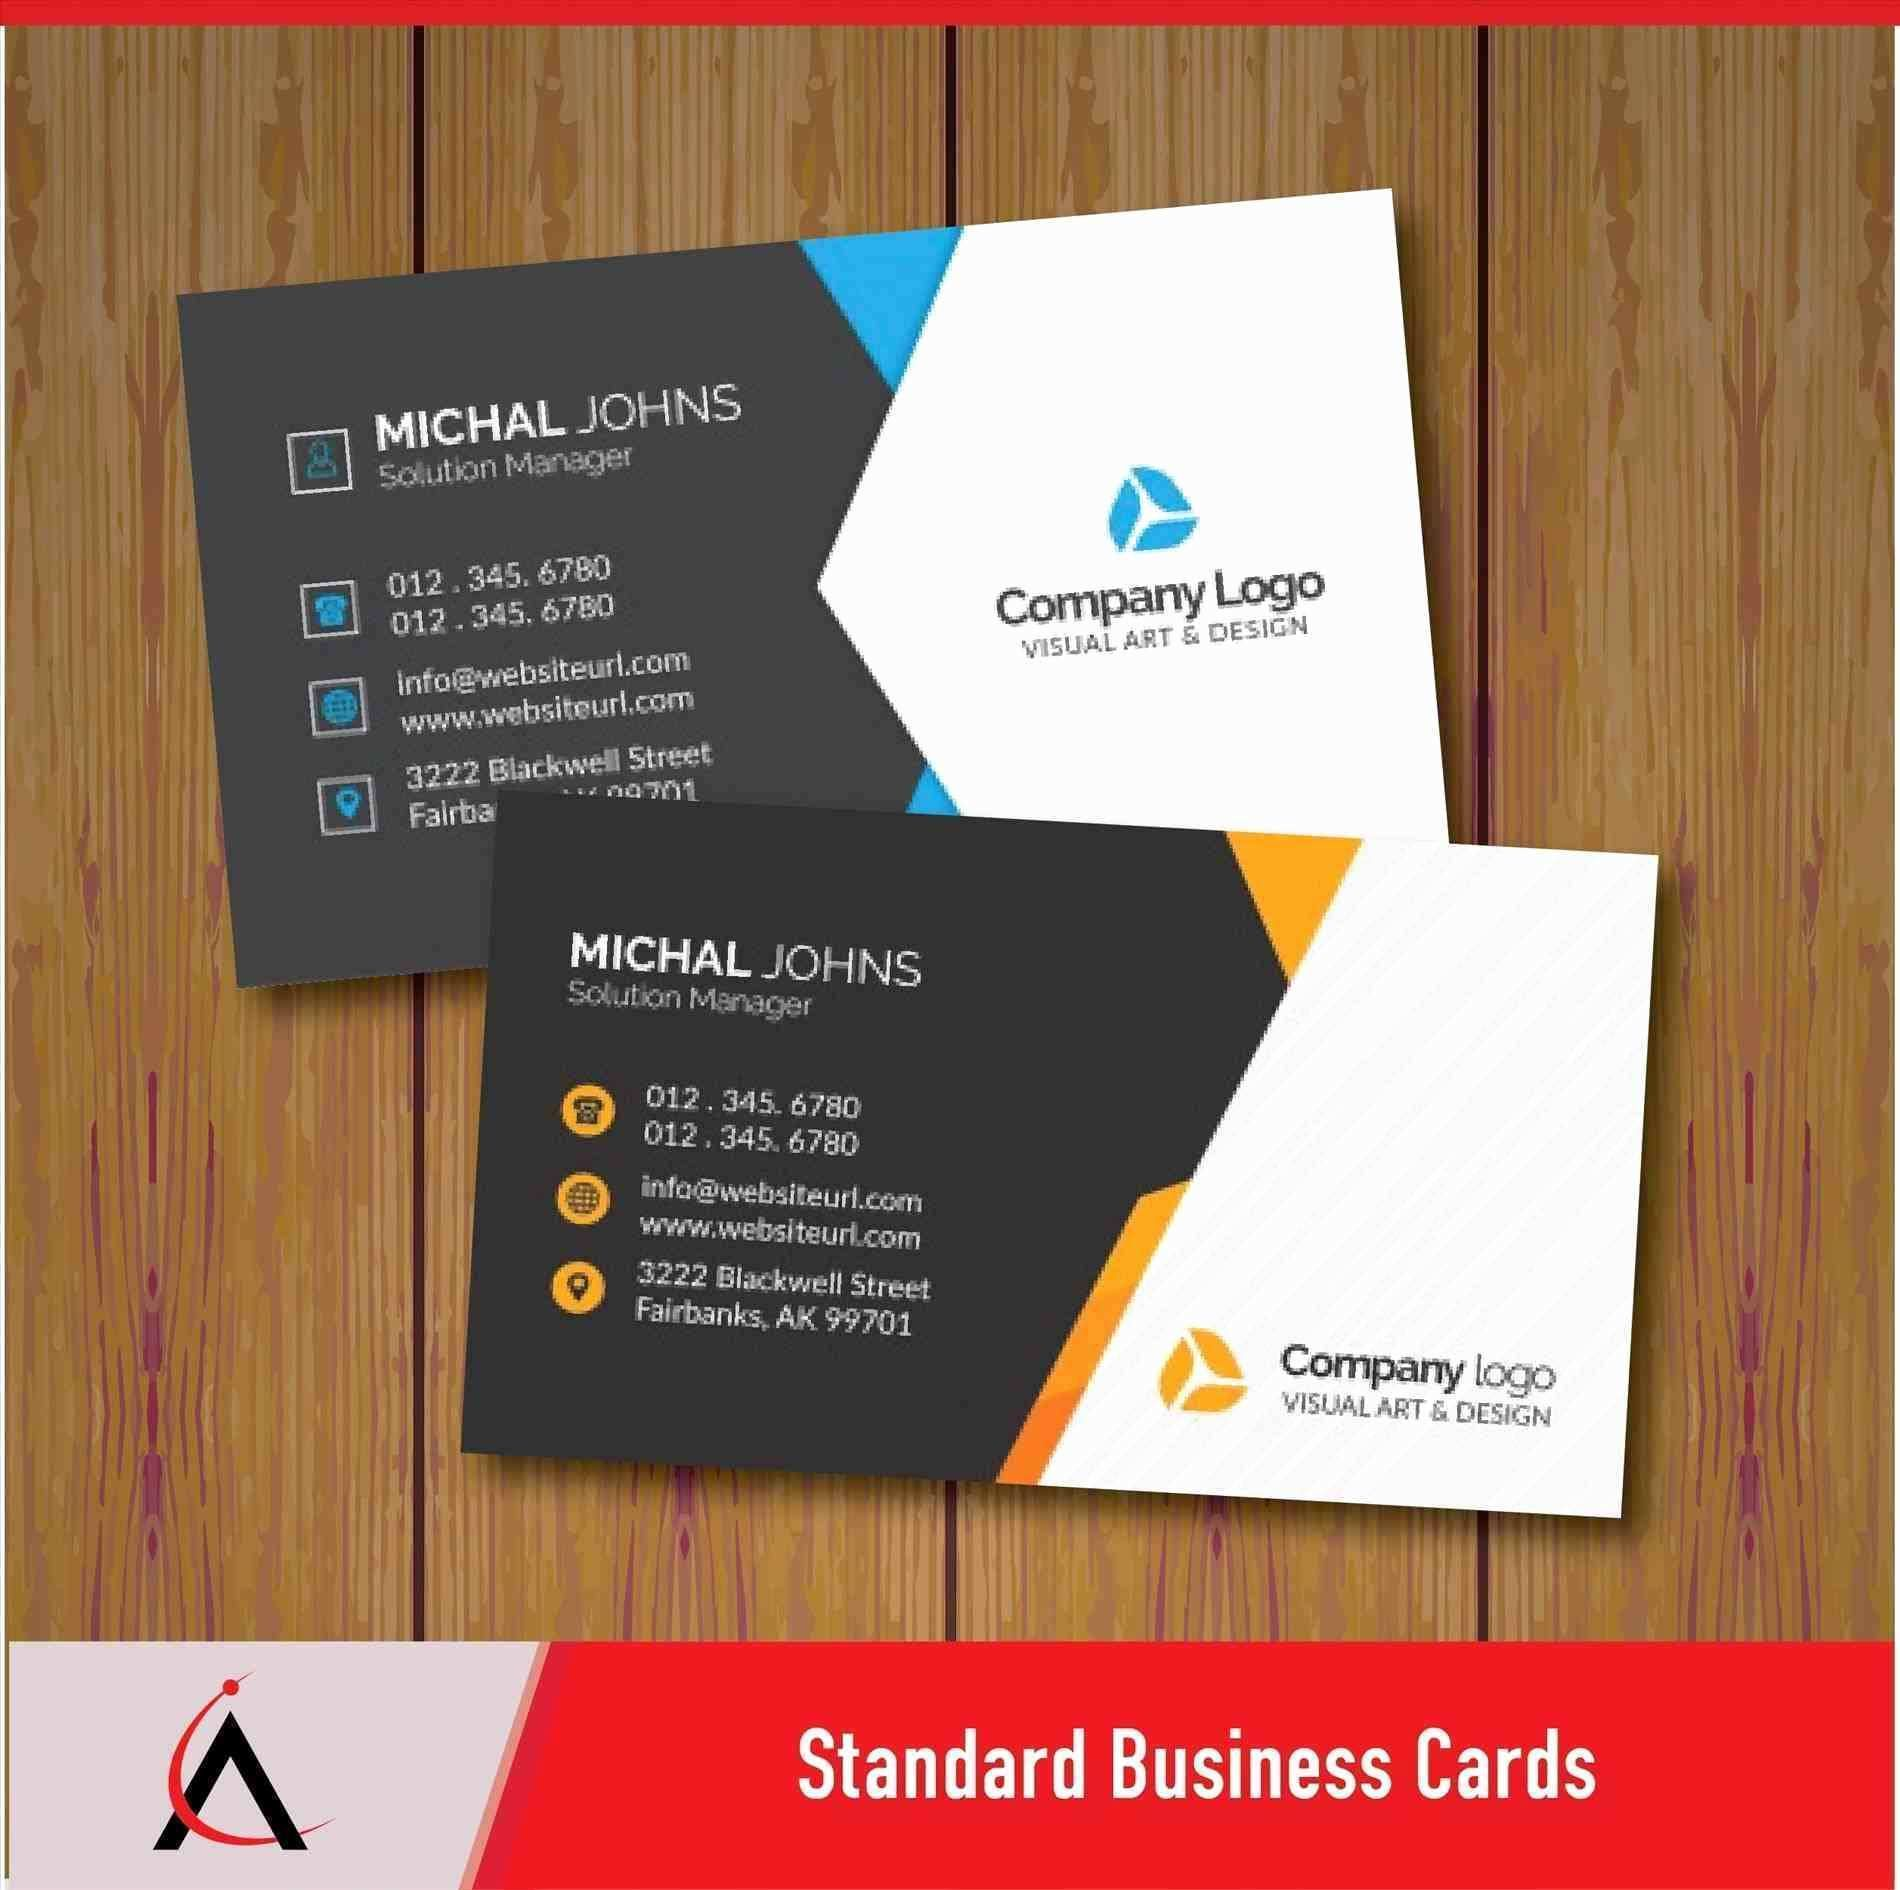 Unique Coldwell Banker Business Cards Real Estate Global With Coldwell Banker Business Card Templa Business Card Template Card Template Stunning Business Cards Coldwell banker business cards template